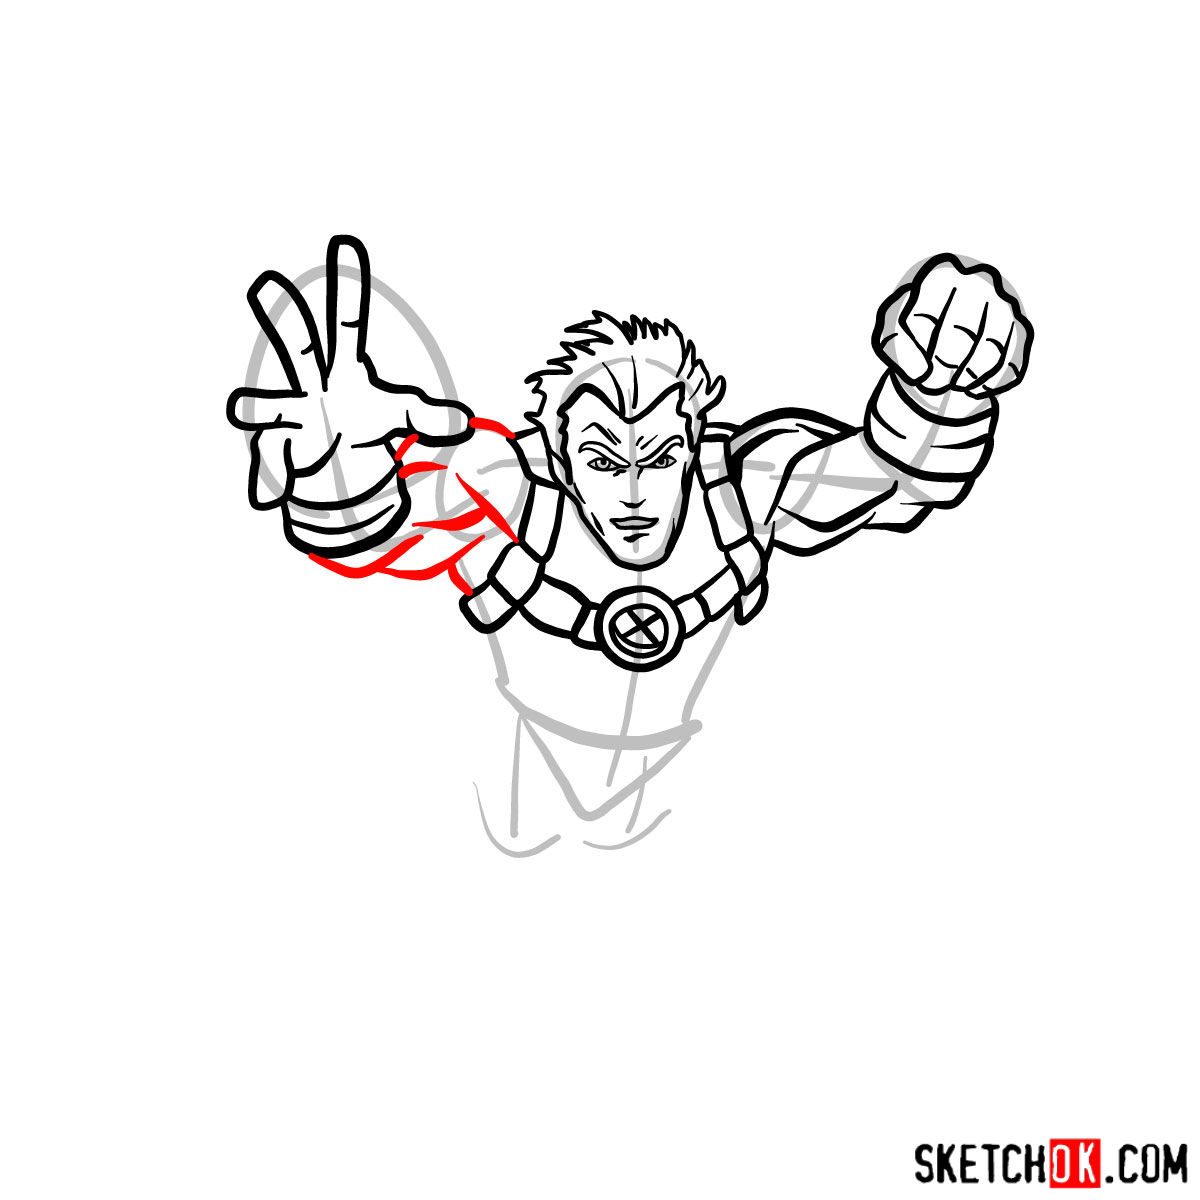 How to draw Cannonball, a mutant from X-Men series - step 07